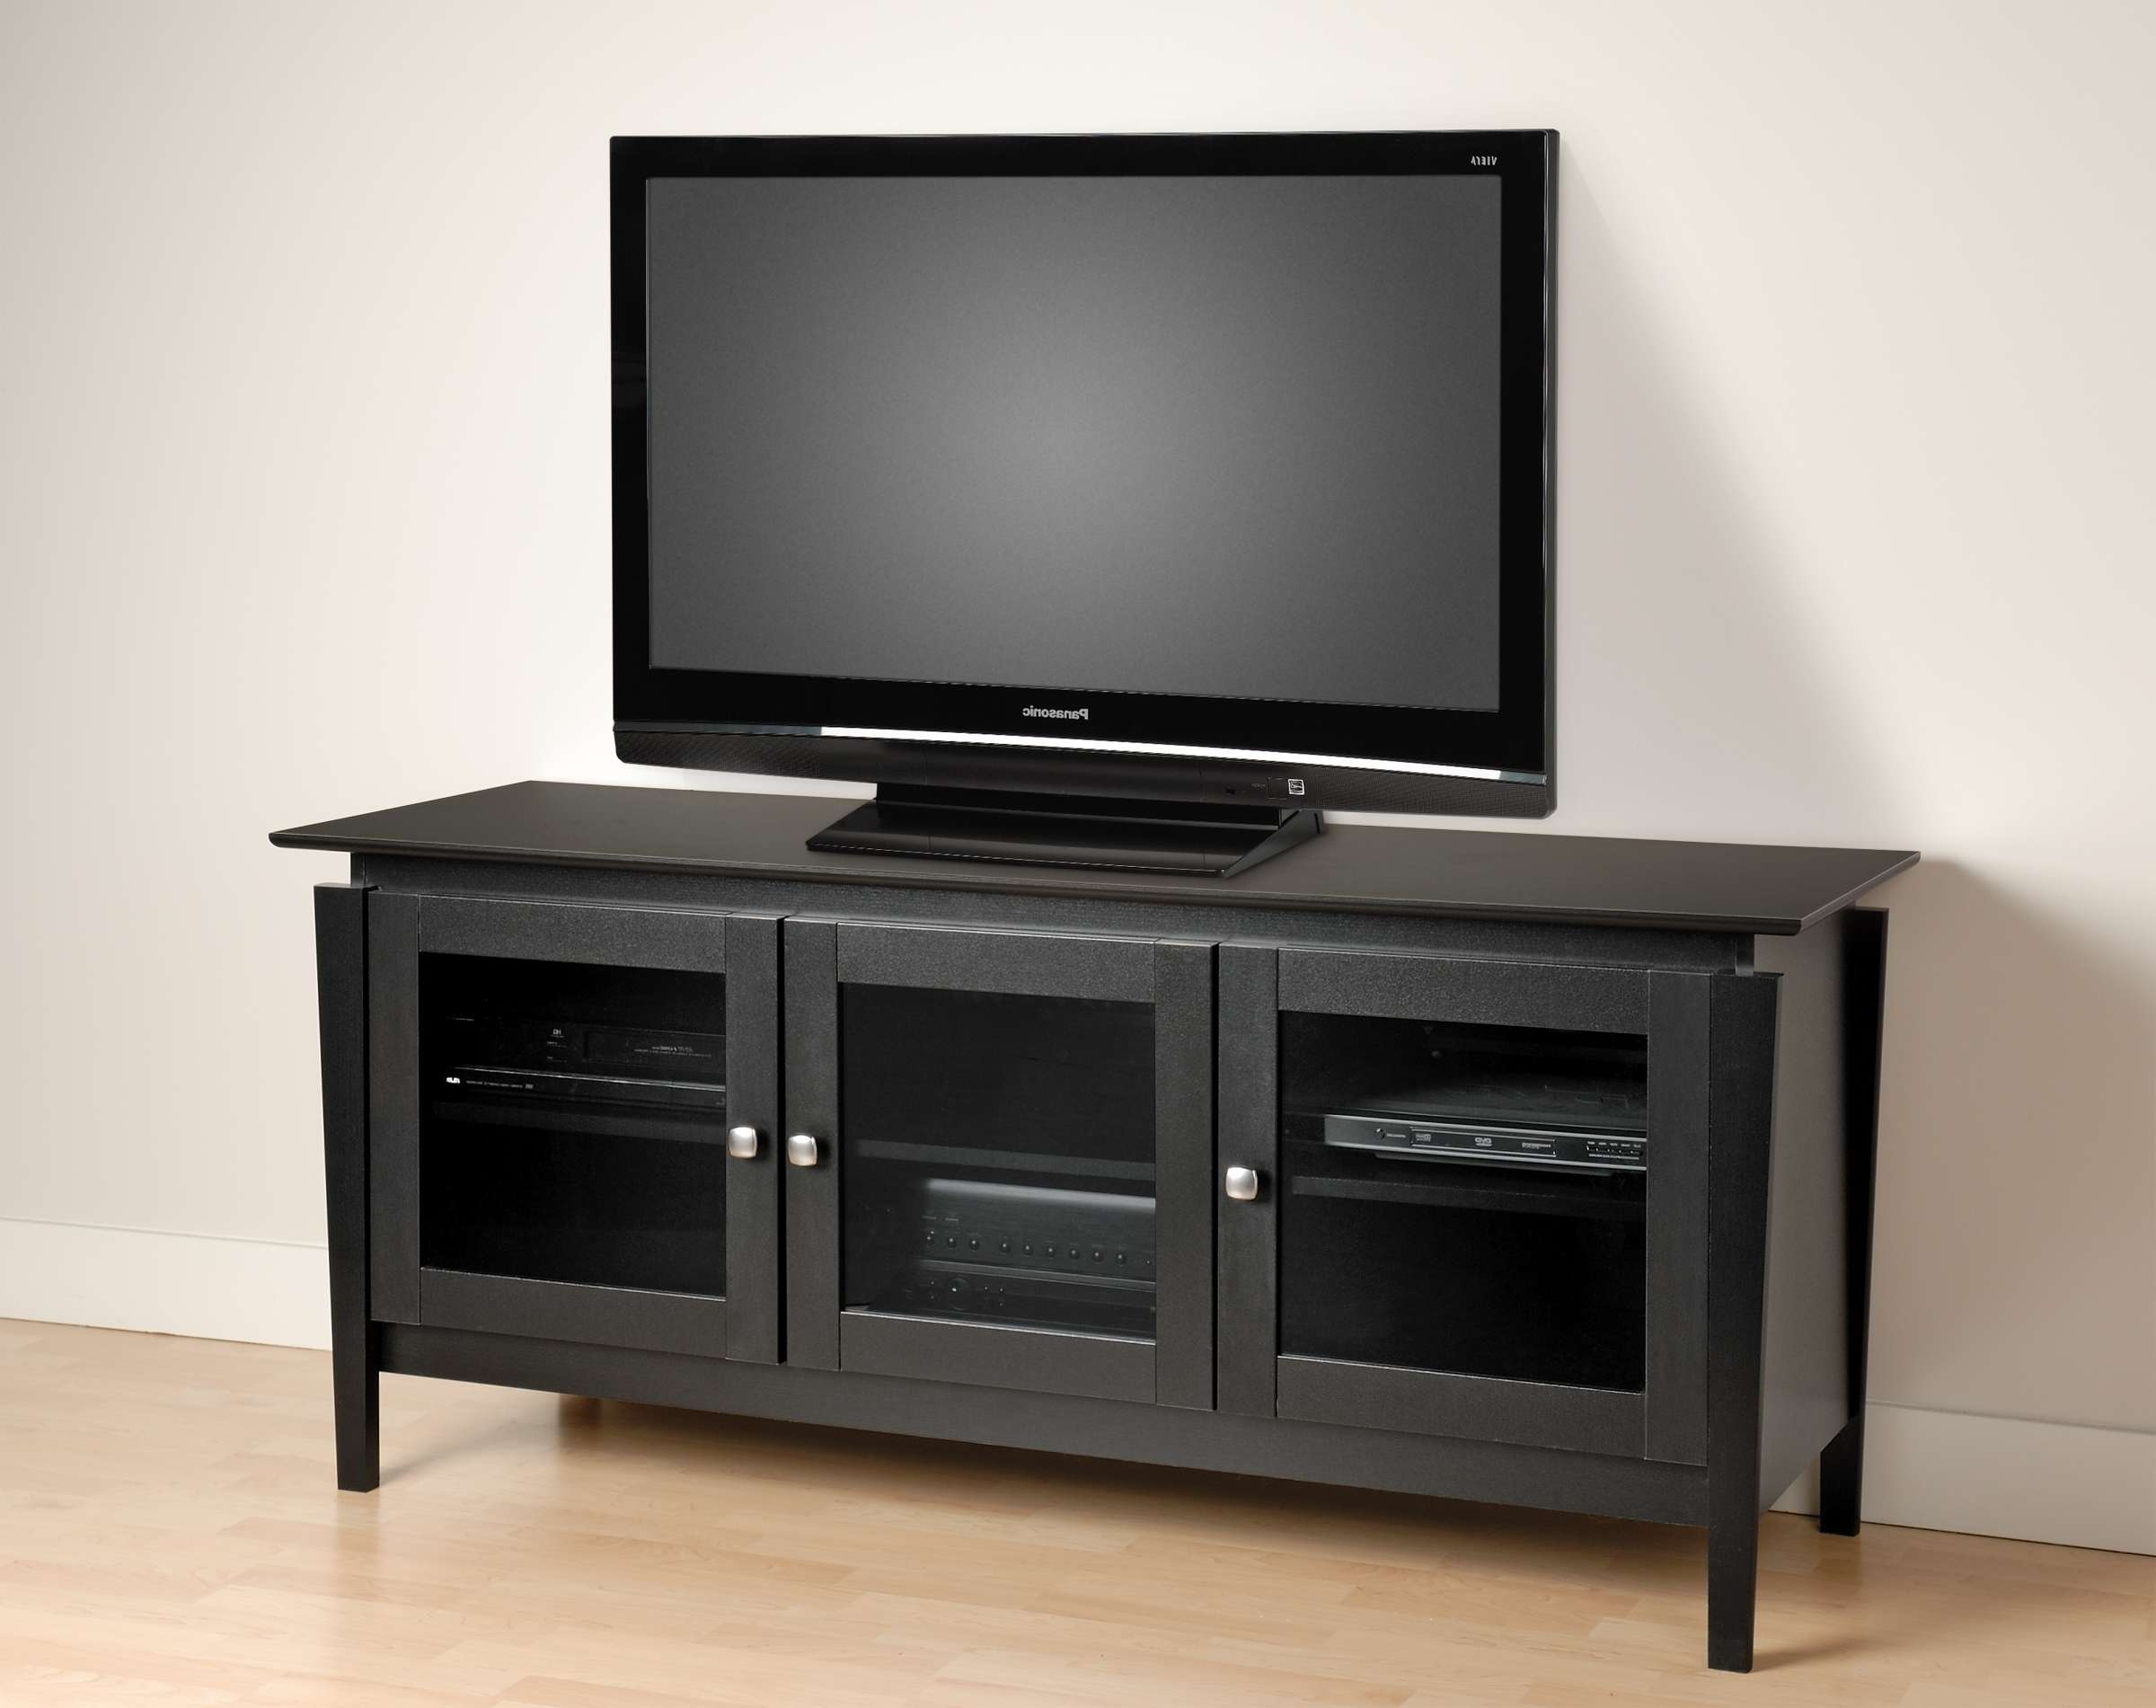 Tv Cabinet With Glass Doors – Imanisr Throughout Corner Tv Cabinets With Glass Doors (View 17 of 20)